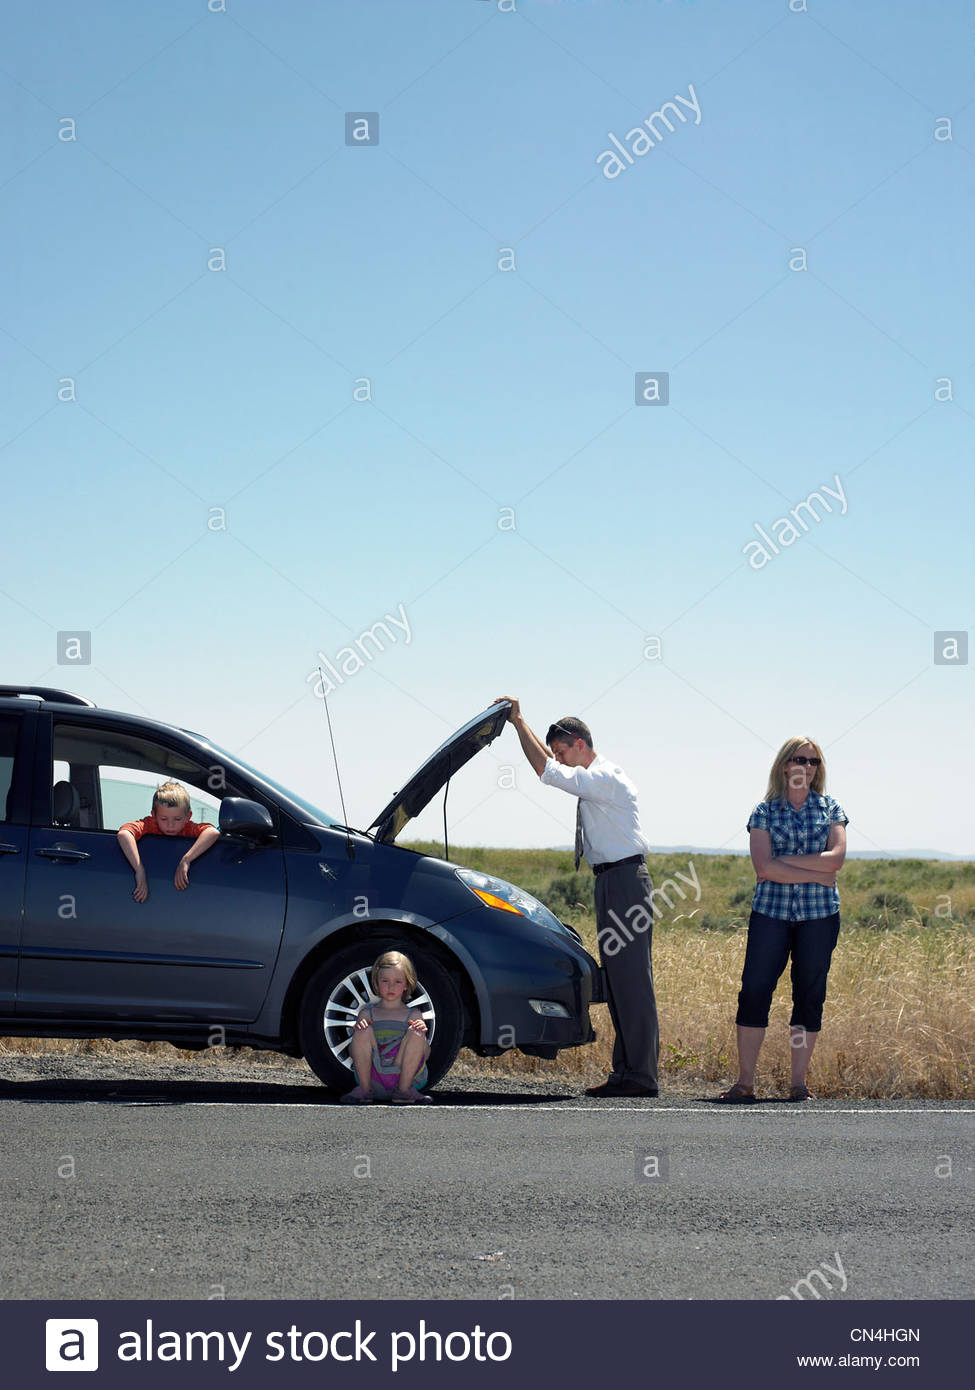 Parents and children at roadside with broken down car - Stock Image